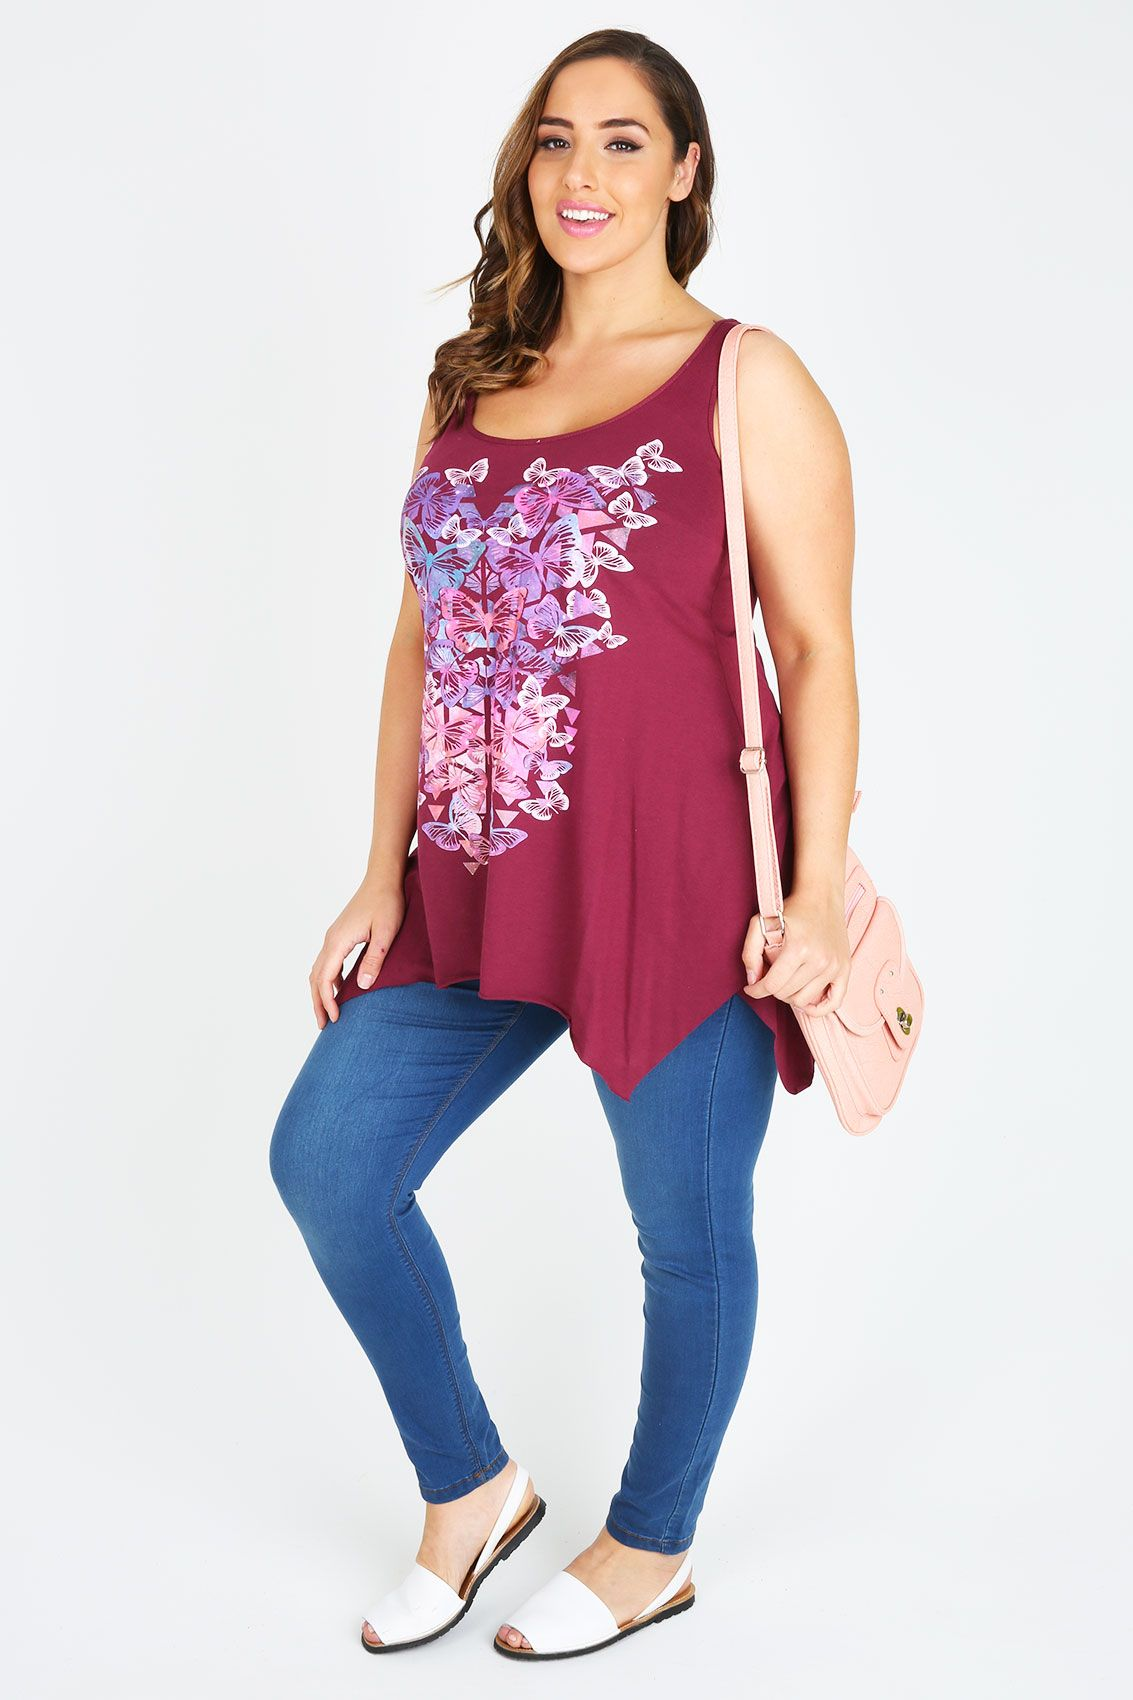 Maroon Sleeveless Top With Butterfly Placement Print